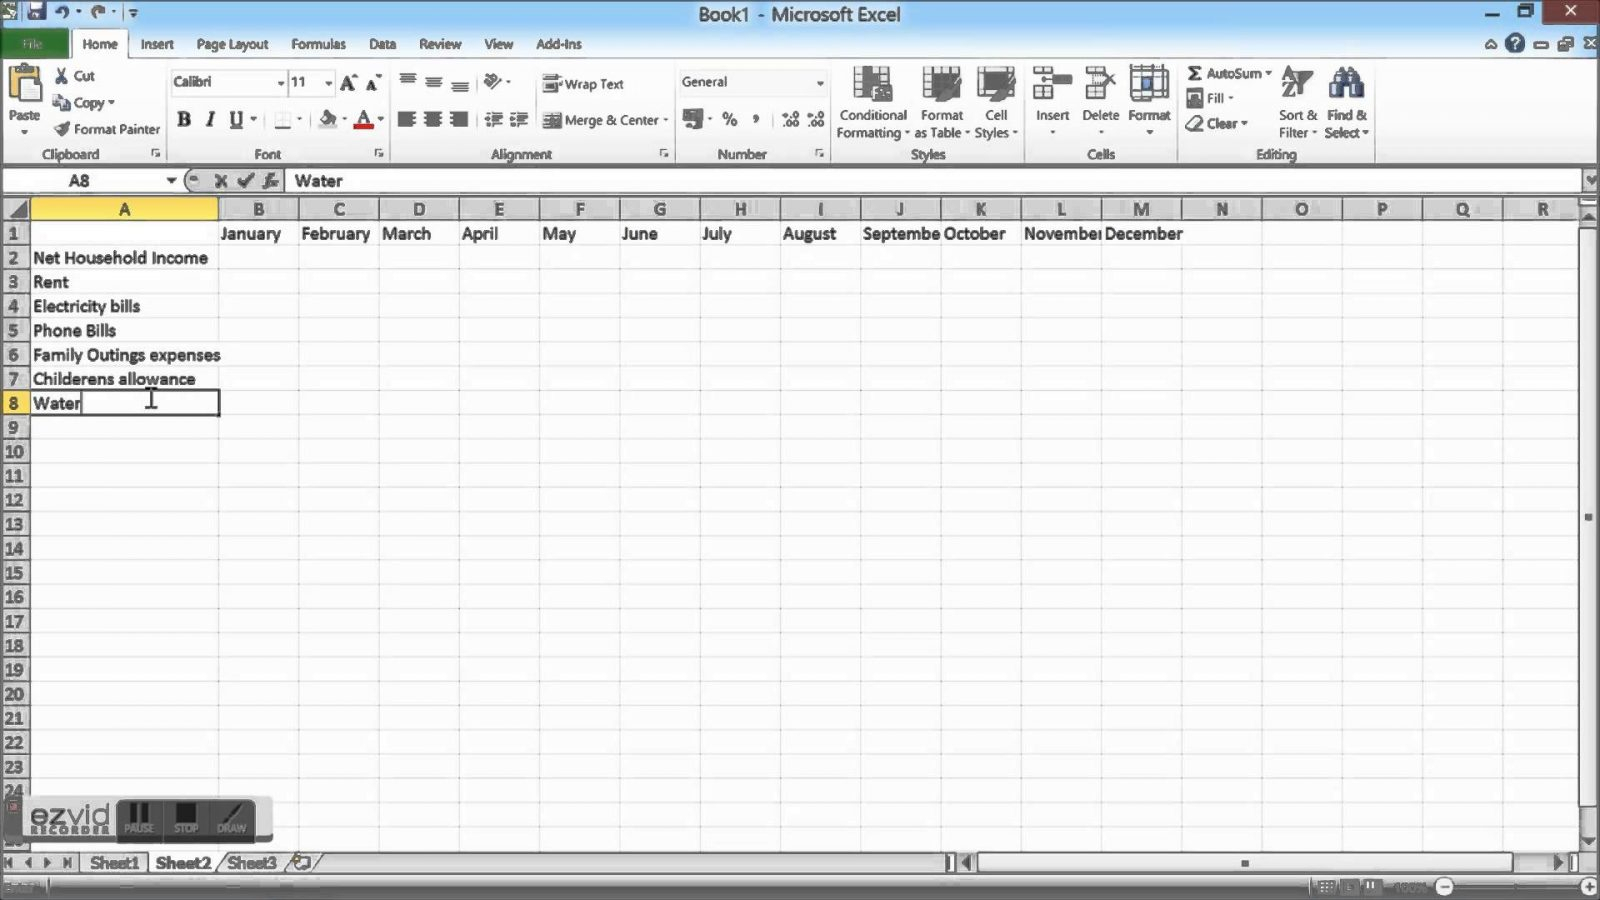 Setting Up A Personal Budget Spreadsheet Regarding Project Budgeting Template 1024X811 Example Of Making Budget